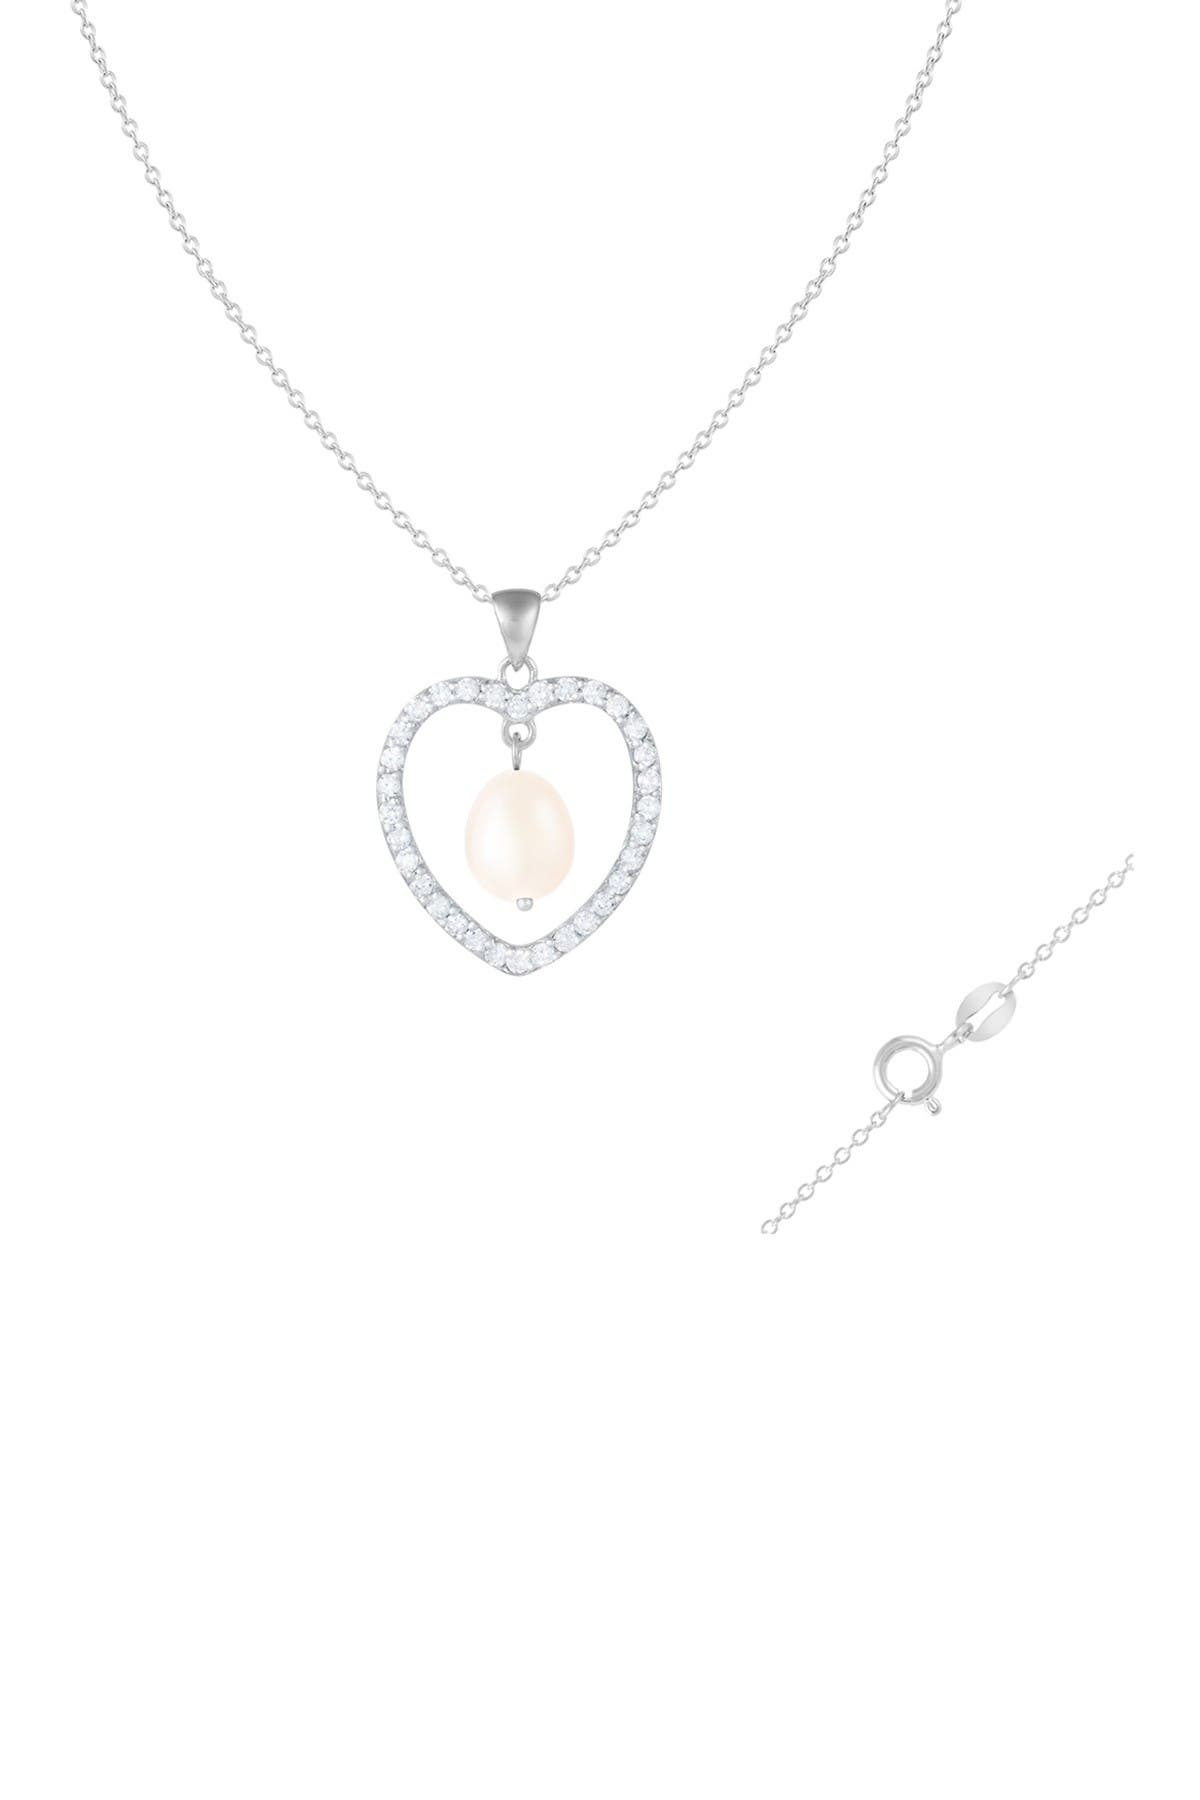 Image of Splendid Pearls 8-9mm White Freshwater Pearl & CZ Heart Pendant Necklace